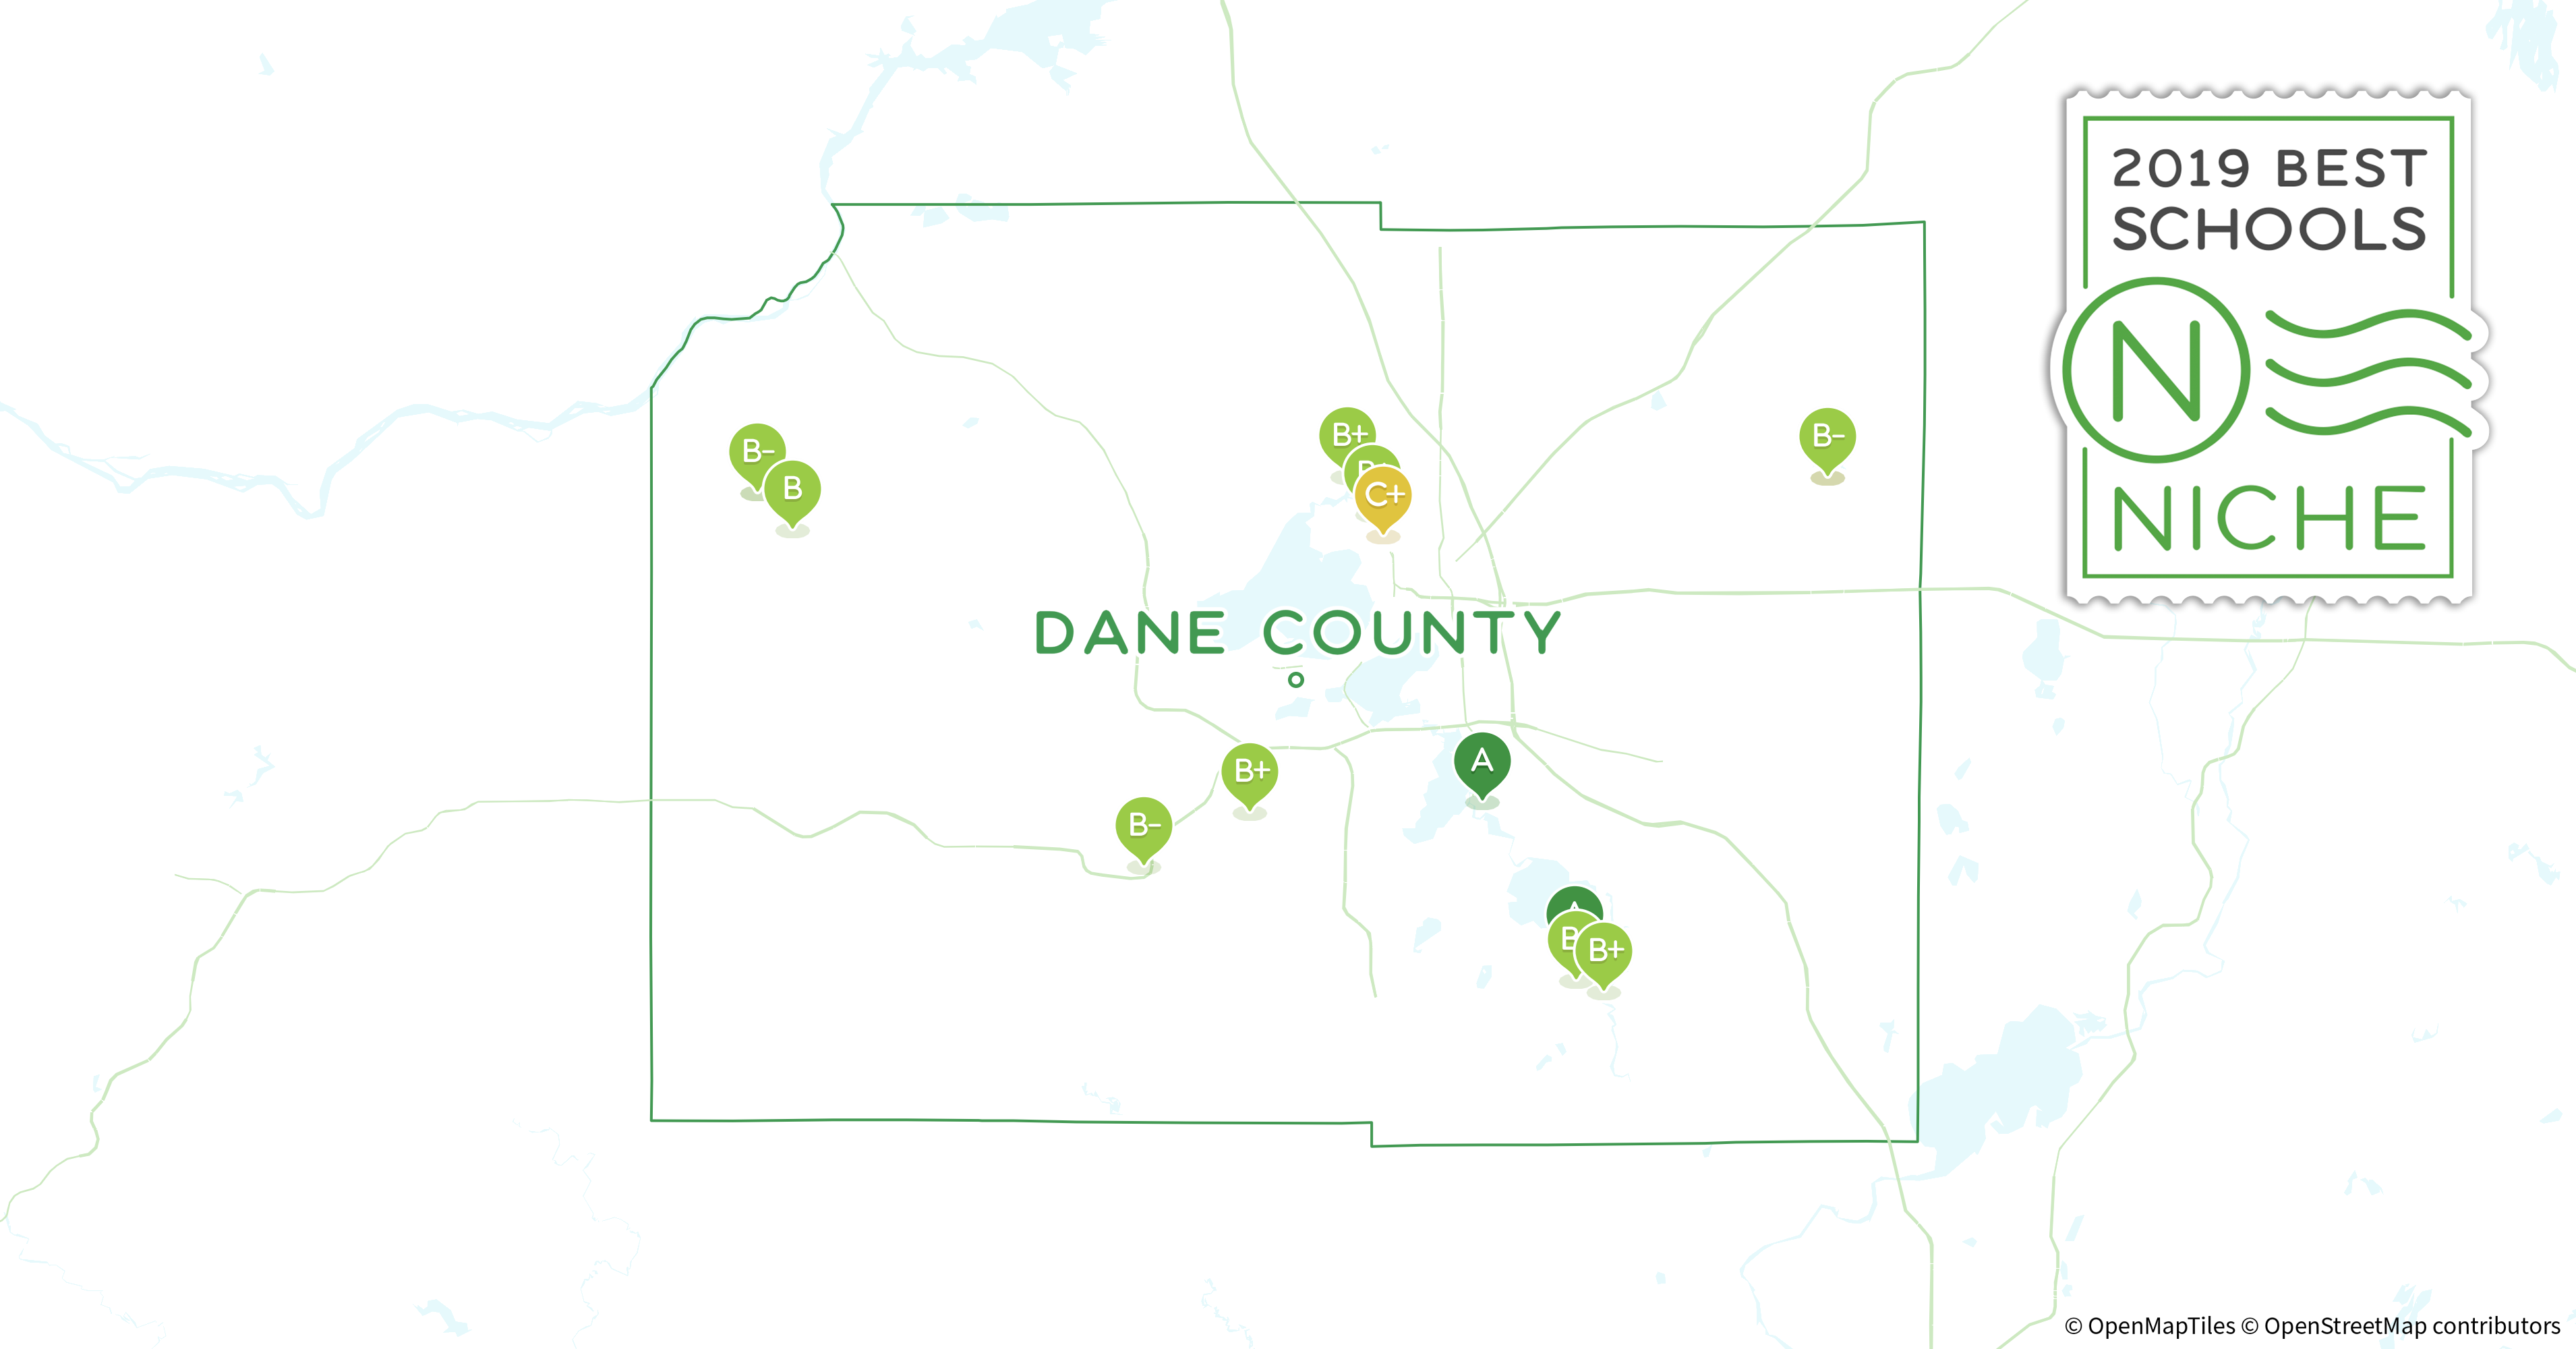 Districts in Dane County, WI - Niche on